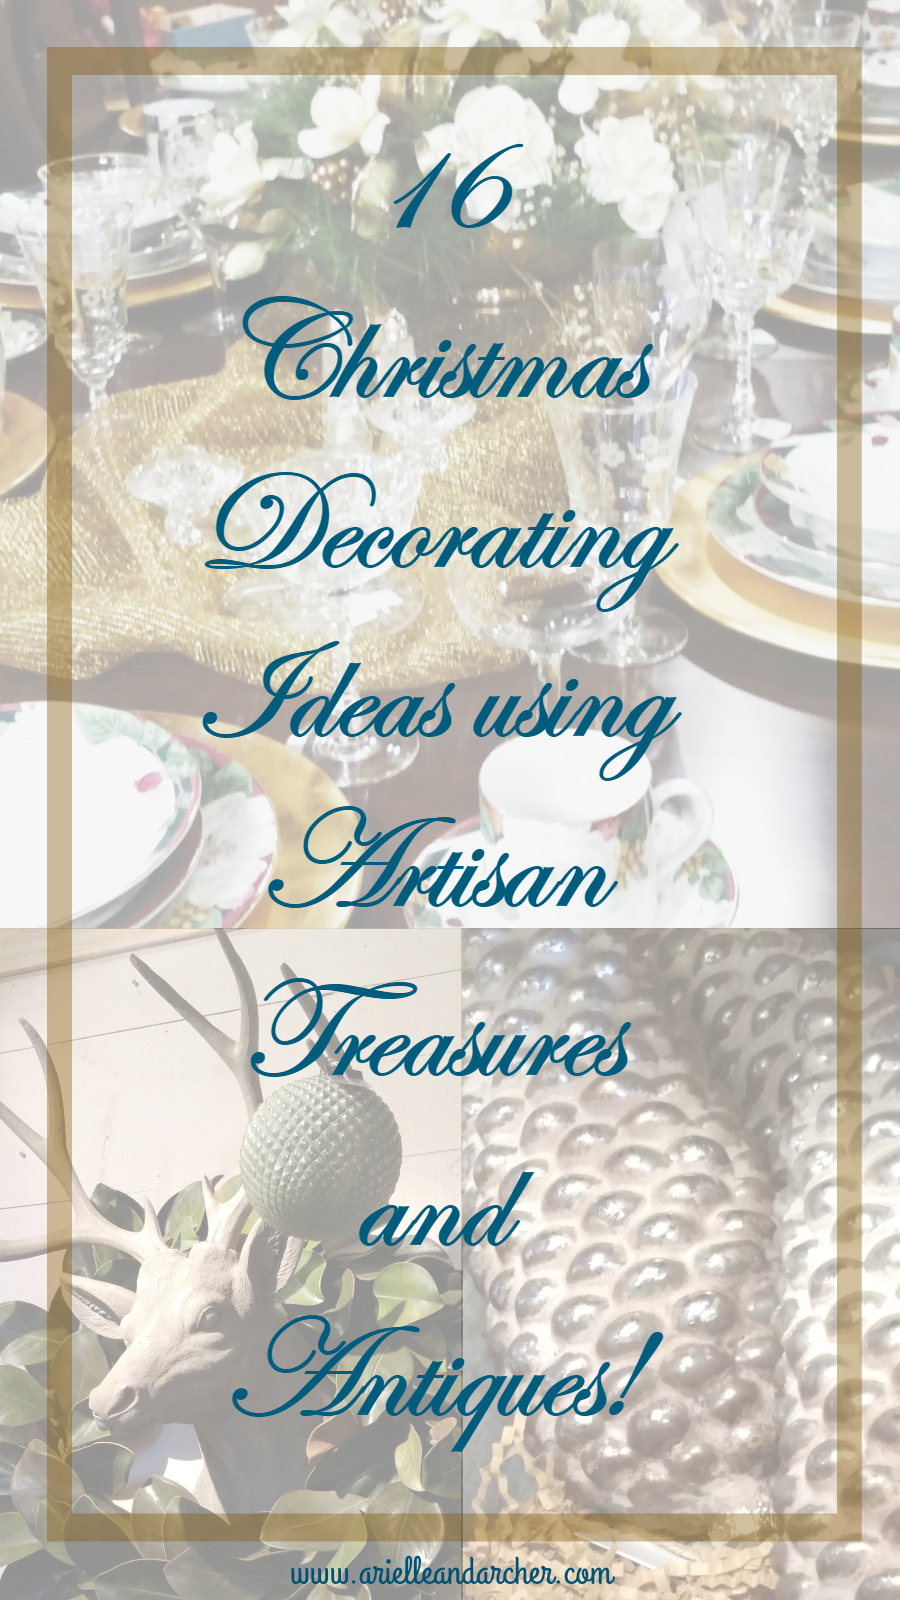 Artisan Treasures and Antiques